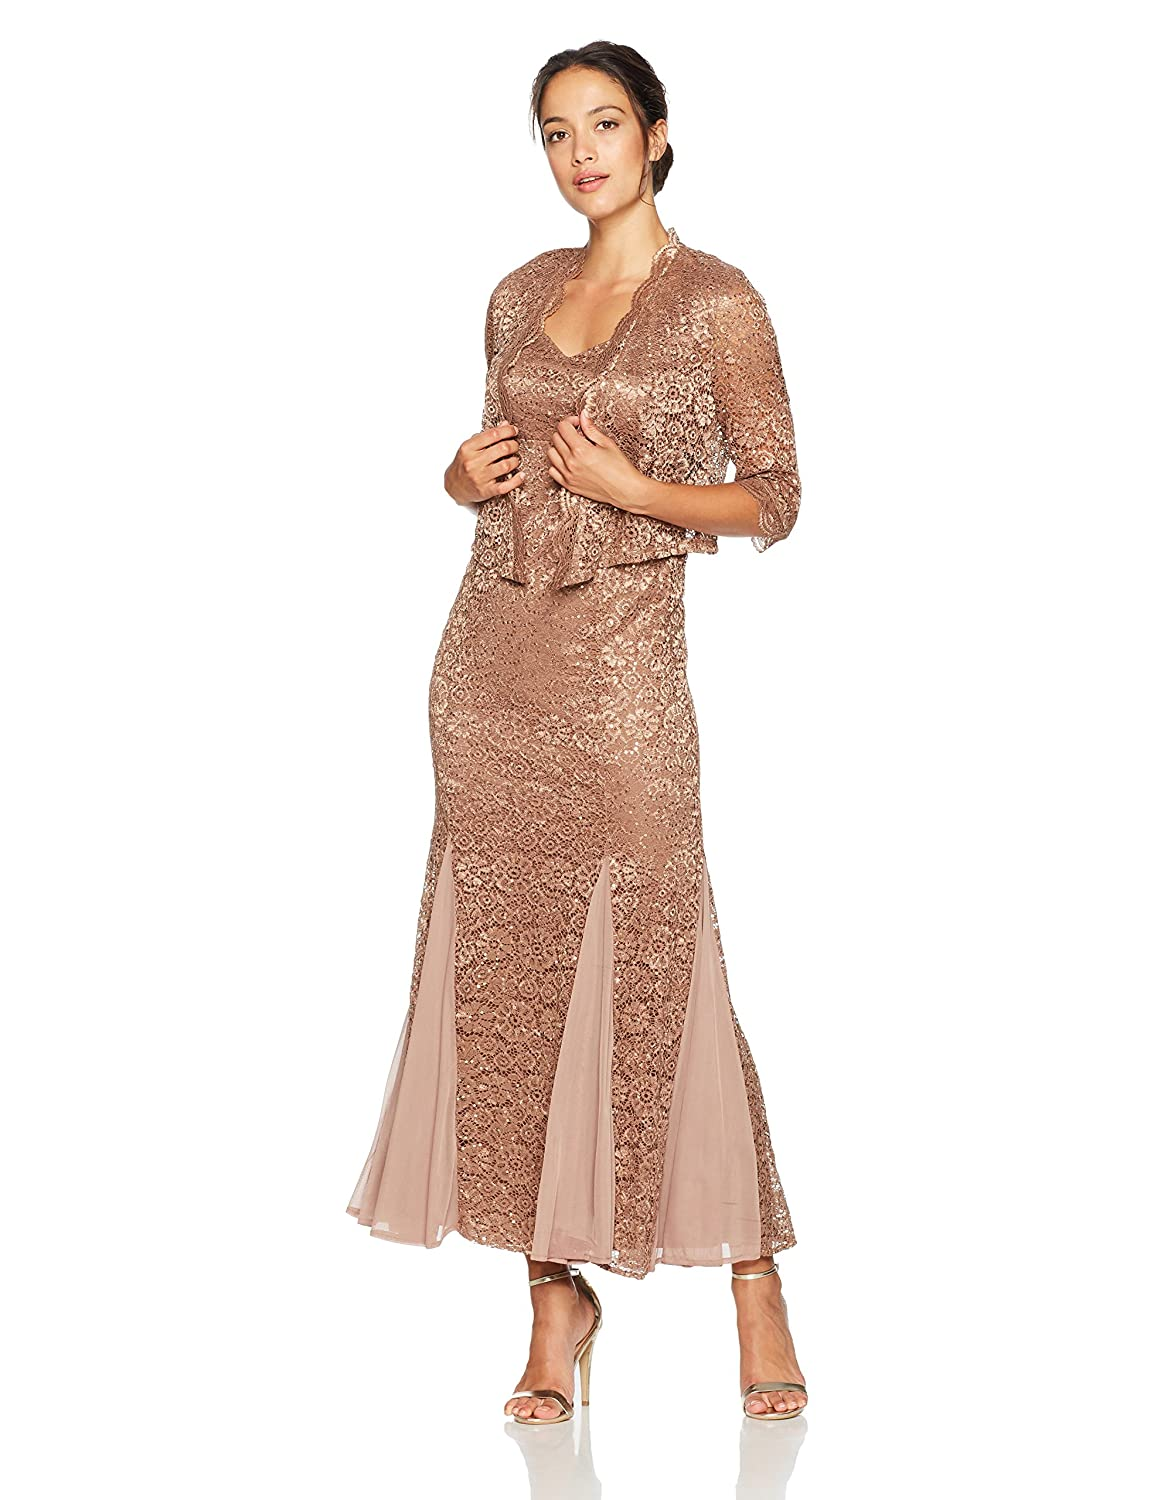 Vintage Evening Dresses and Formal Evening Gowns R&M Richards Womens Petite Size 2 Piece Long Metalic Lace Jacket Dress $97.00 AT vintagedancer.com